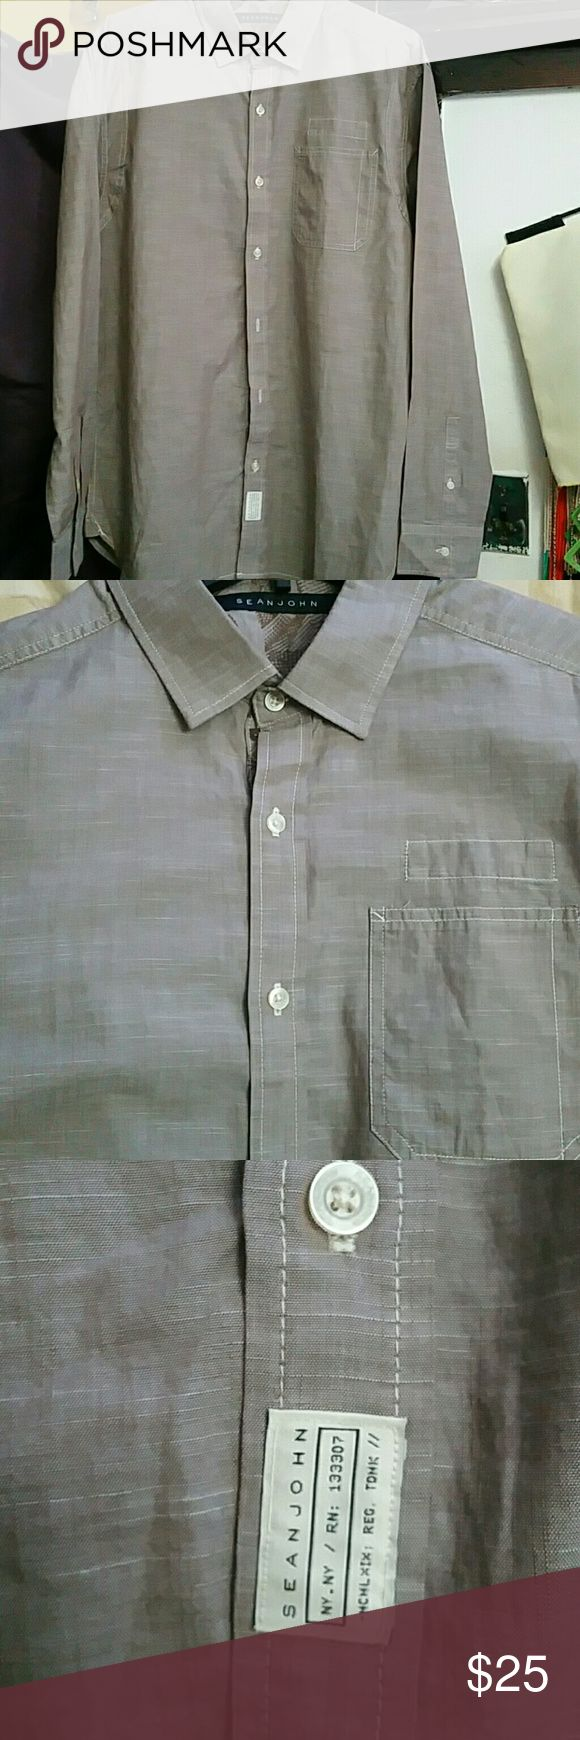 Sean Jean button down shirt 100% cotton Mens Tailored fit long sleeve button down shirt. No imperfections. Size XL Sean John Shirts